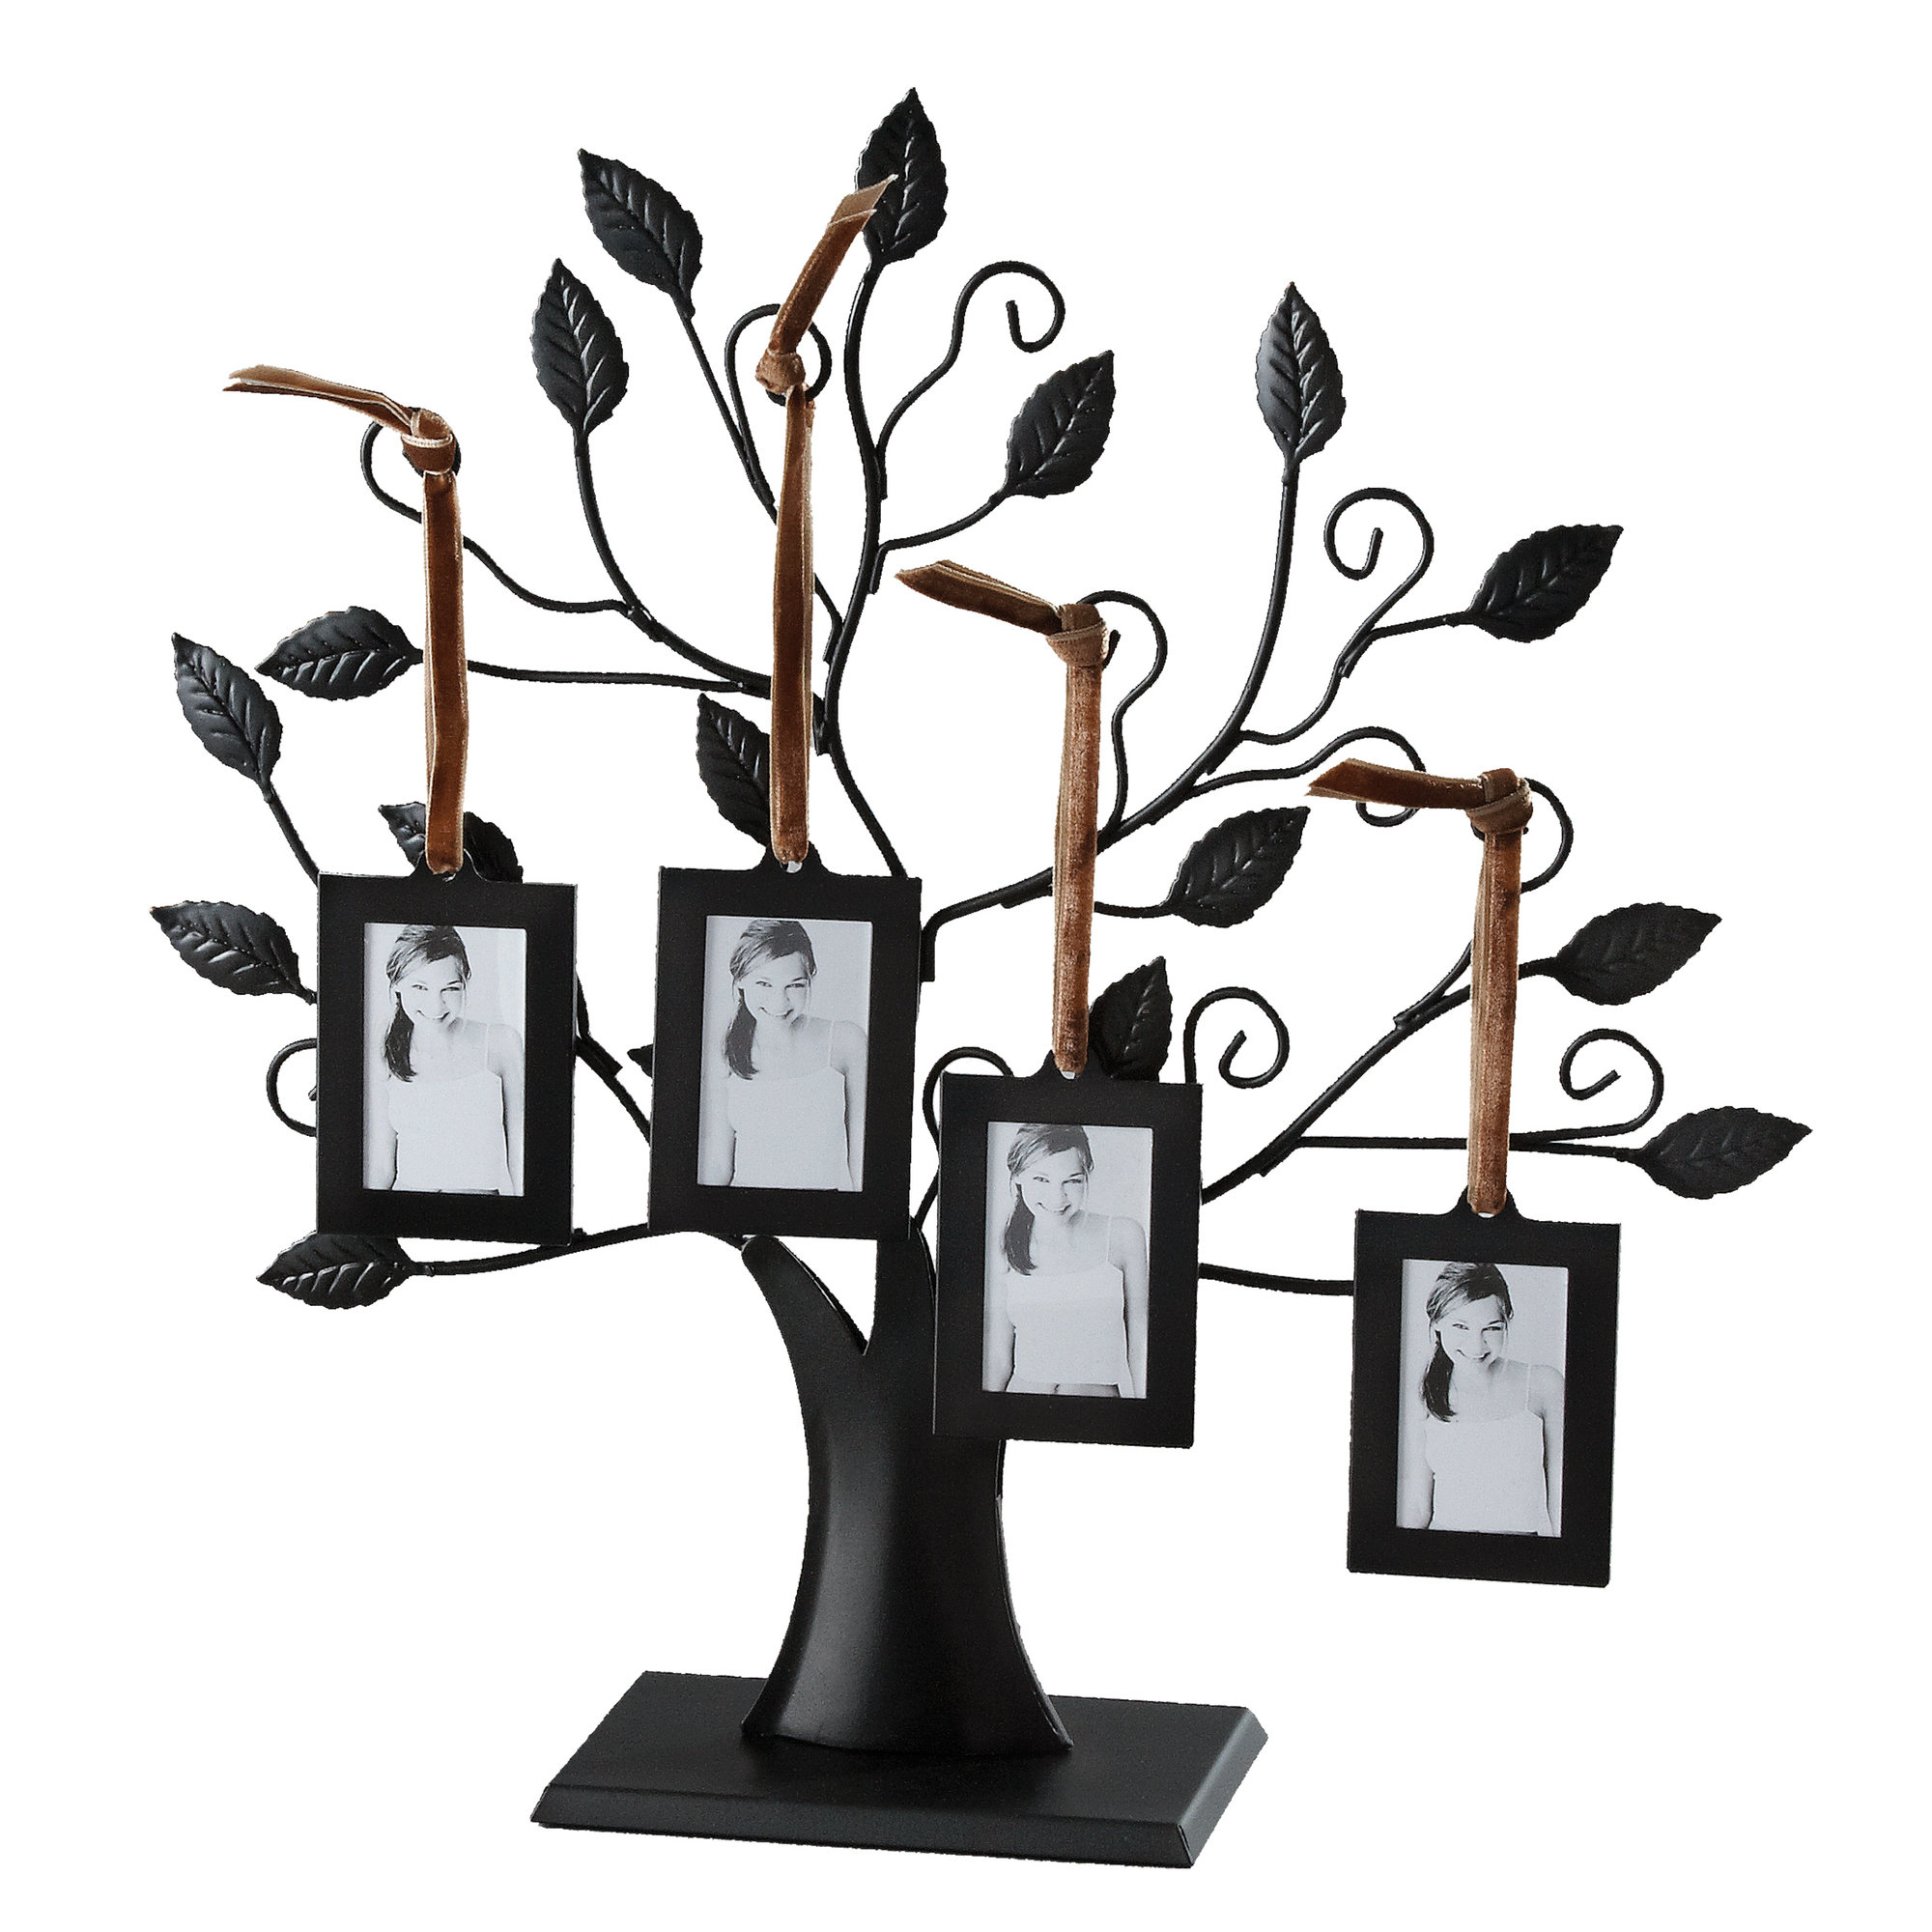 Red Barrel Studio Ilka Family Trees And Card Picture Frame Intended For 2020 Tree Of Life Wall Decor By Red Barrel Studio (Gallery 12 of 20)